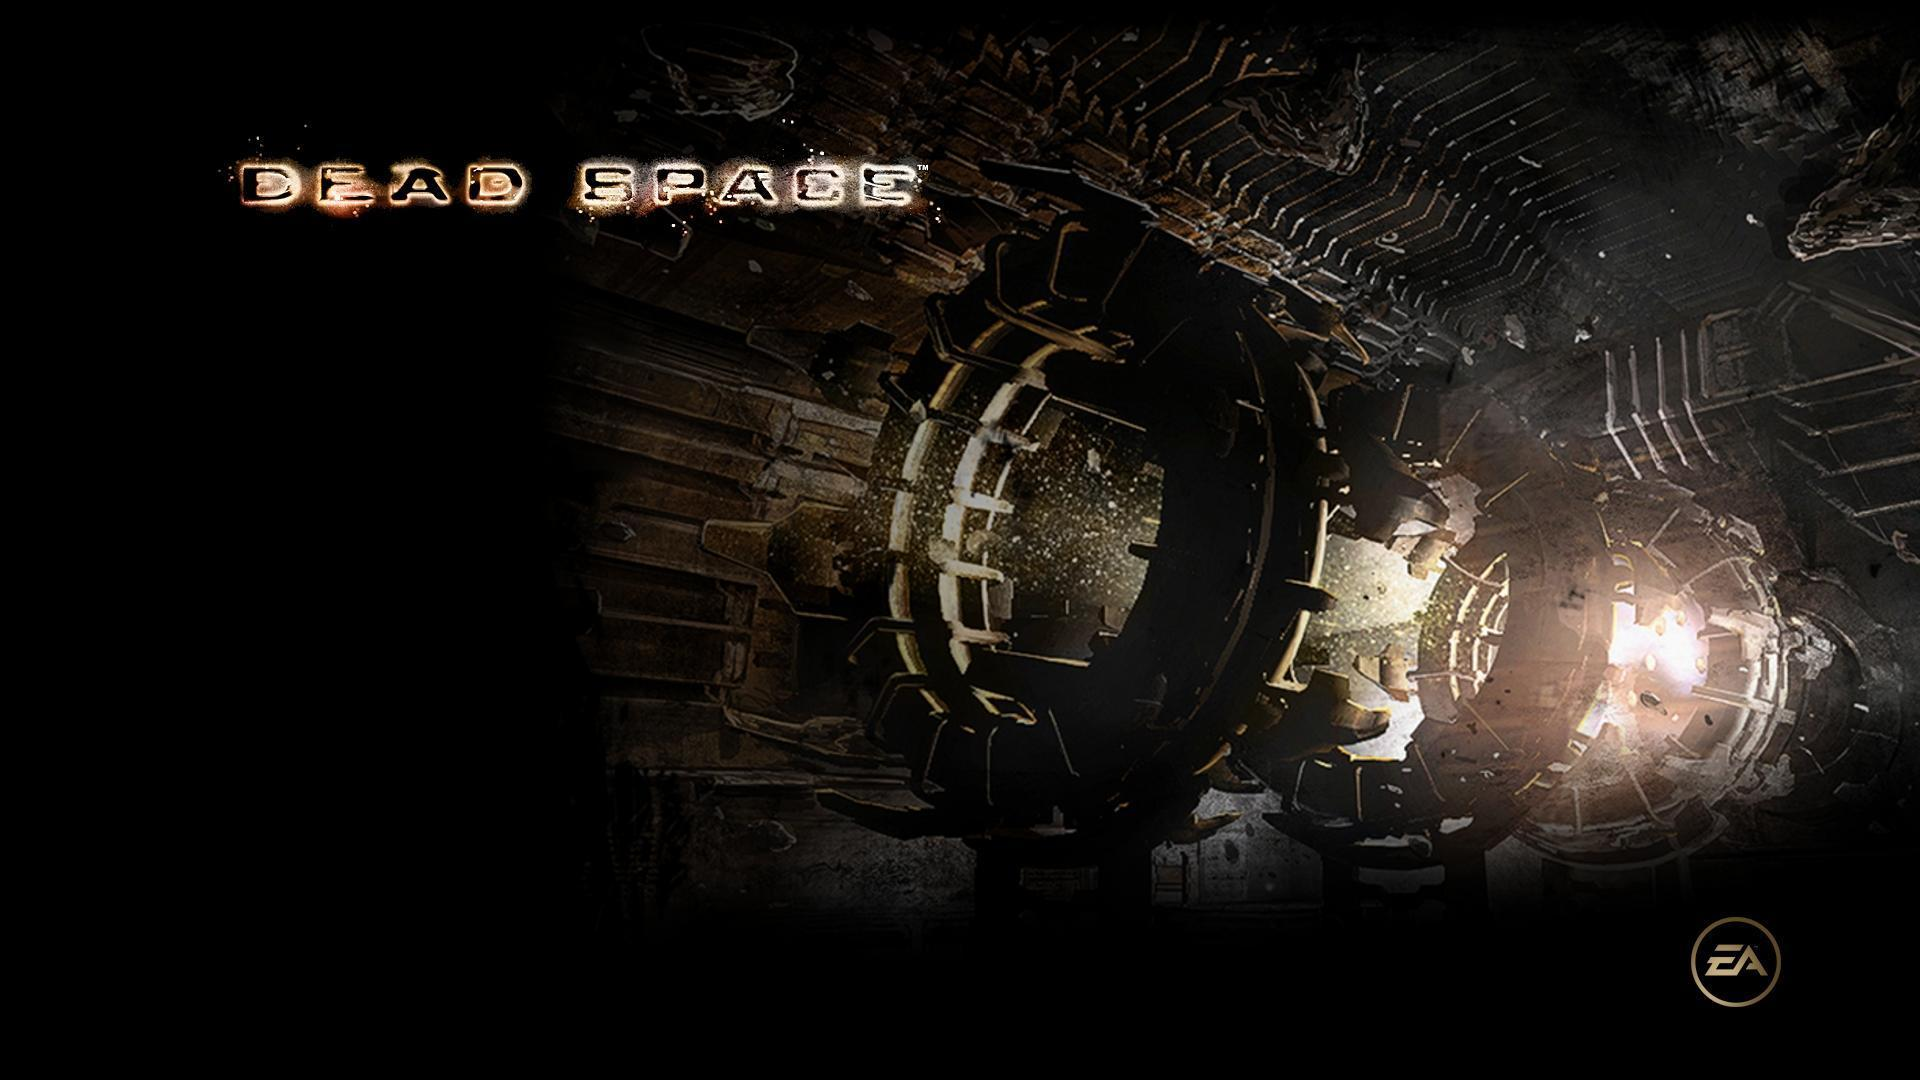 Dead space wallpapers wallpaper cave - Dead space mobile wallpaper ...